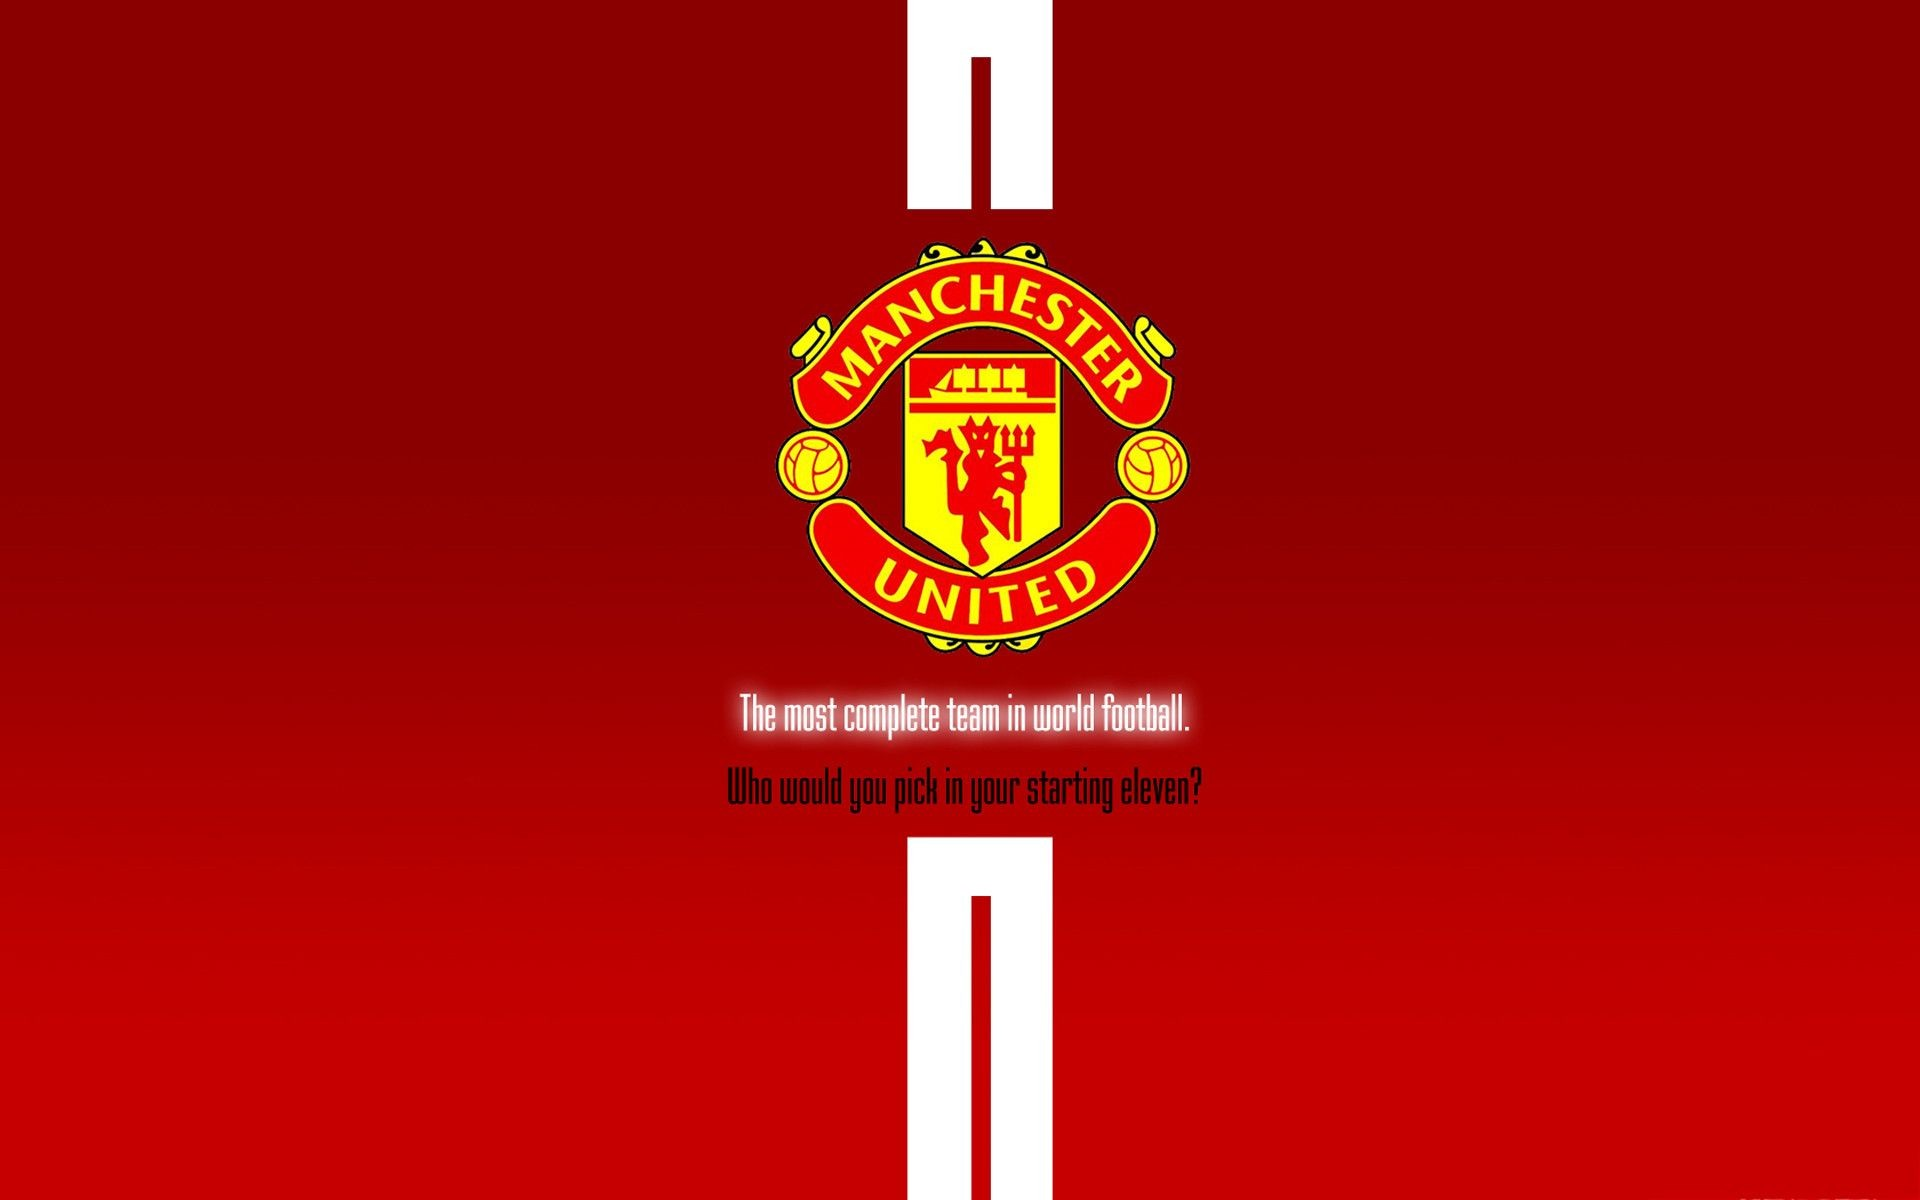 82 manchester united hd wallpapers 2018 82 manchester united hd wallpapers 2018